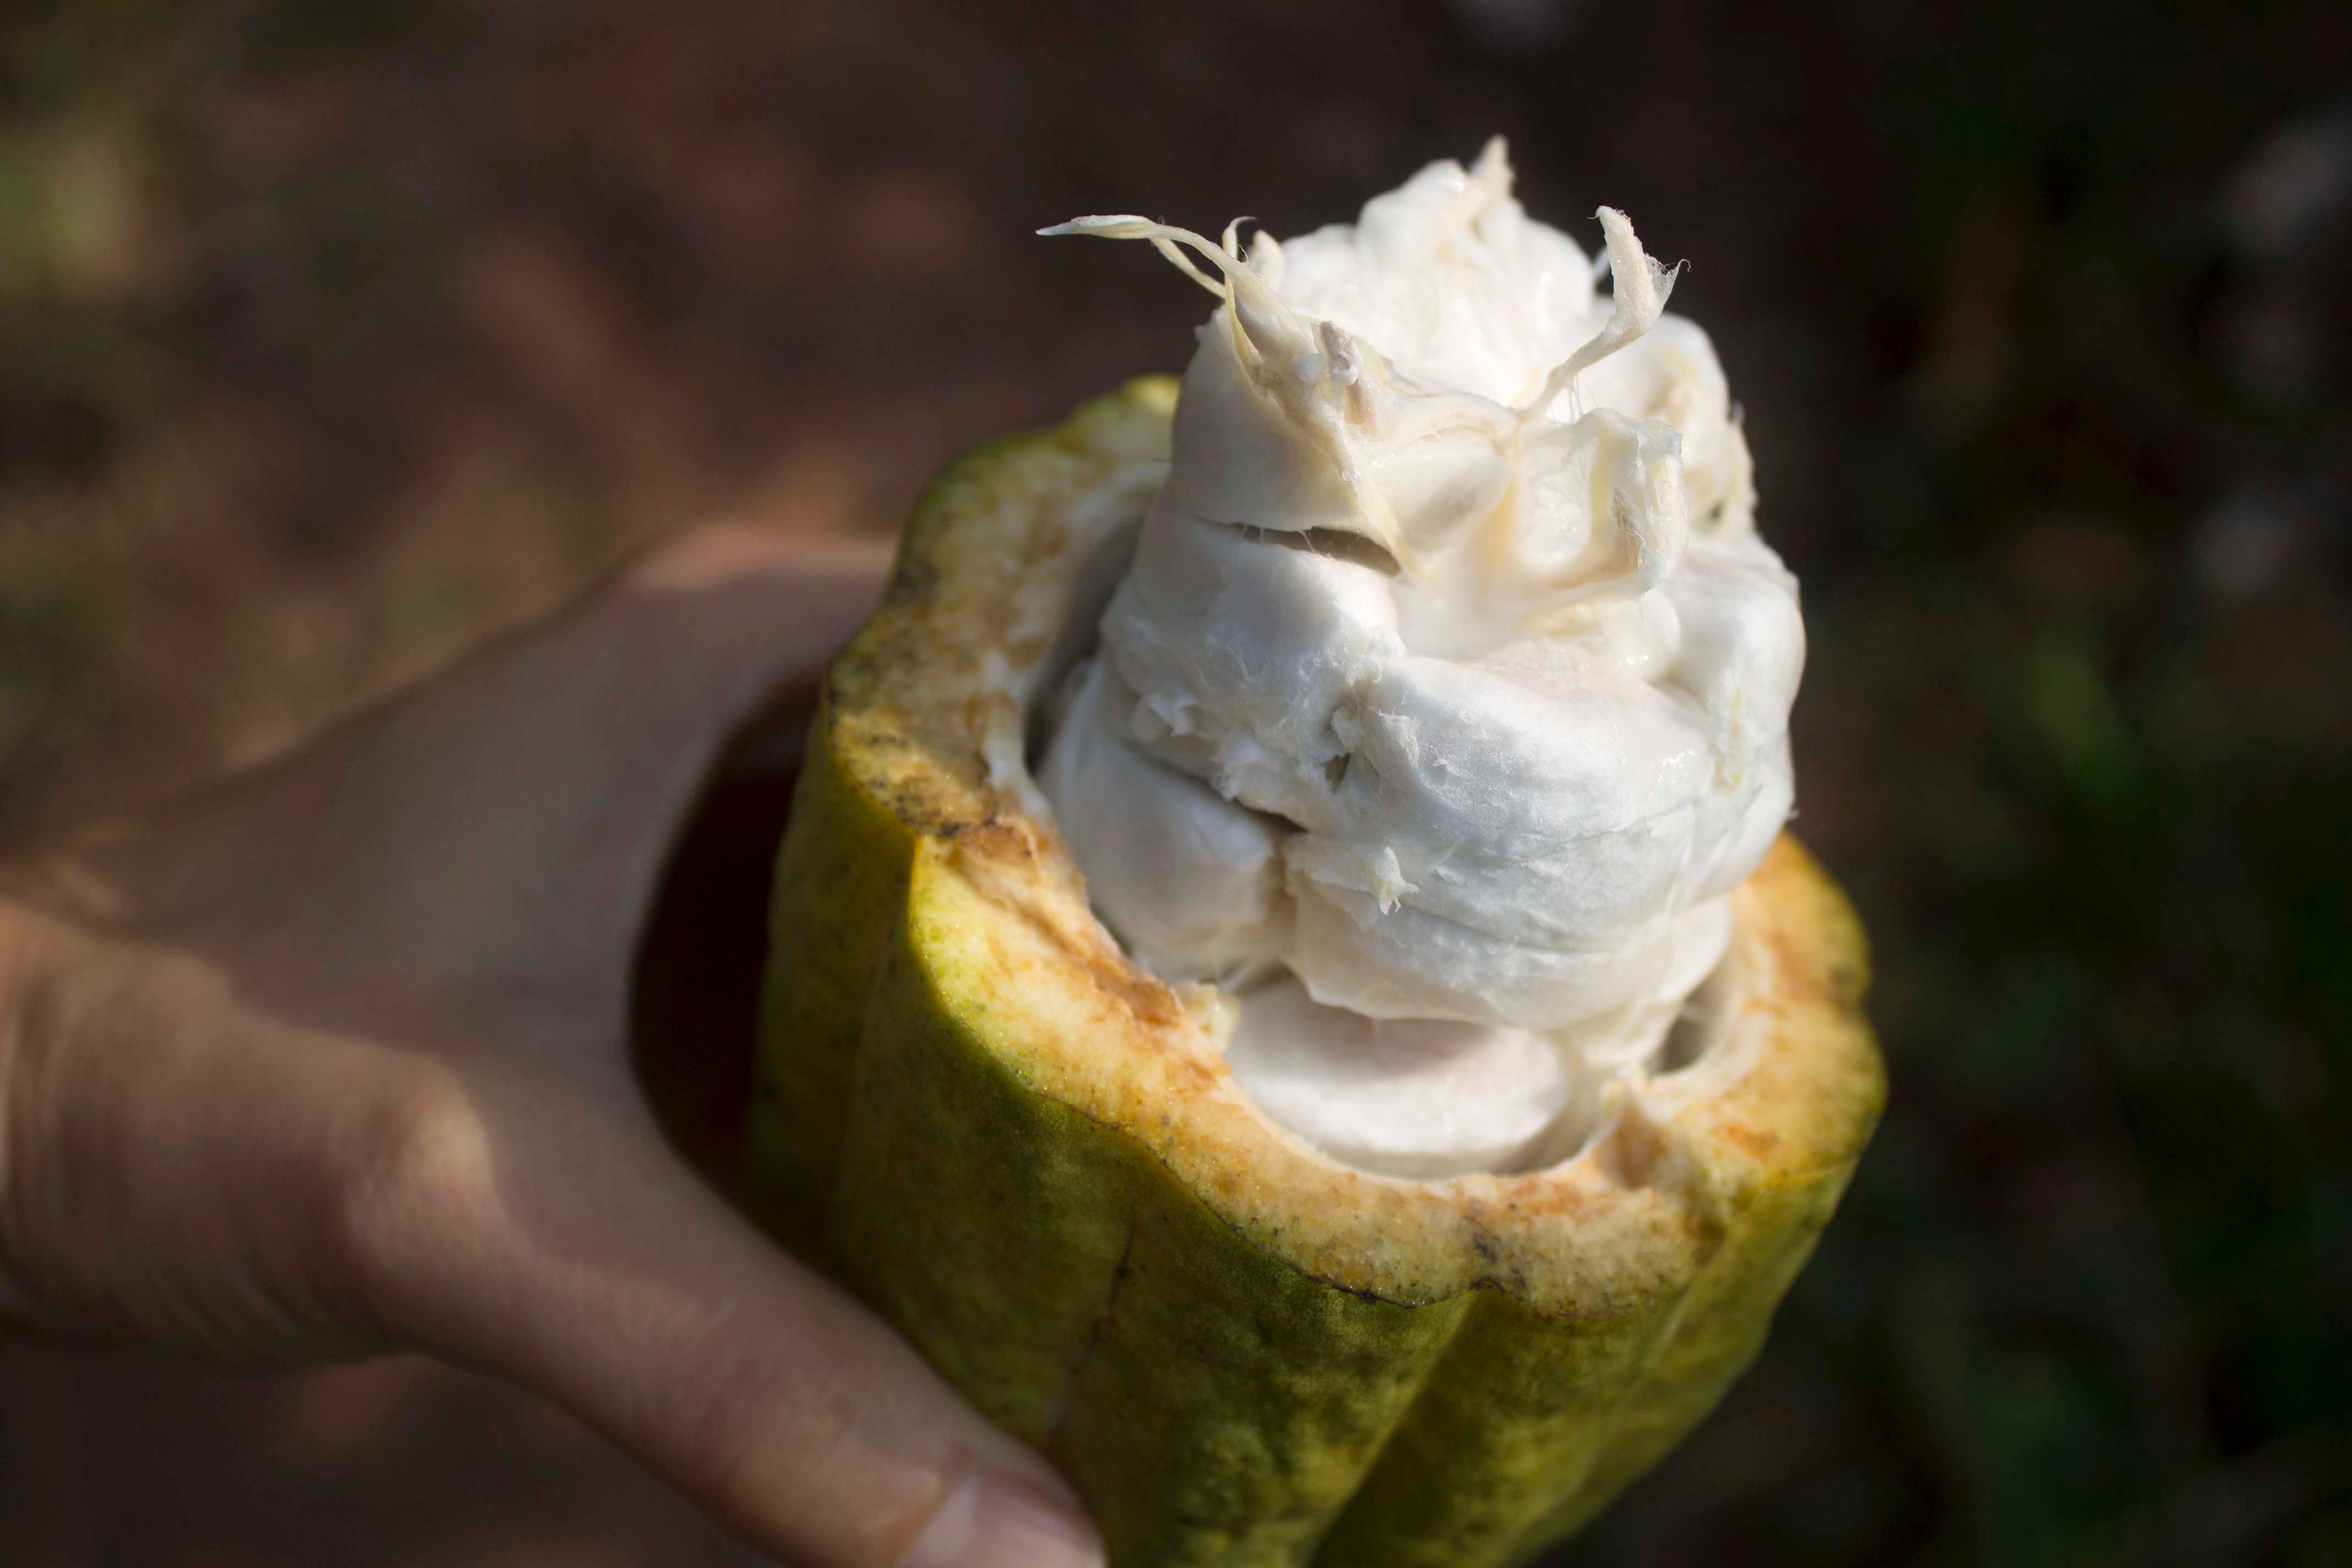 Hand Holding Cacao Fruit Cut Open Exposing Cacao Beans and Cacao Flesh